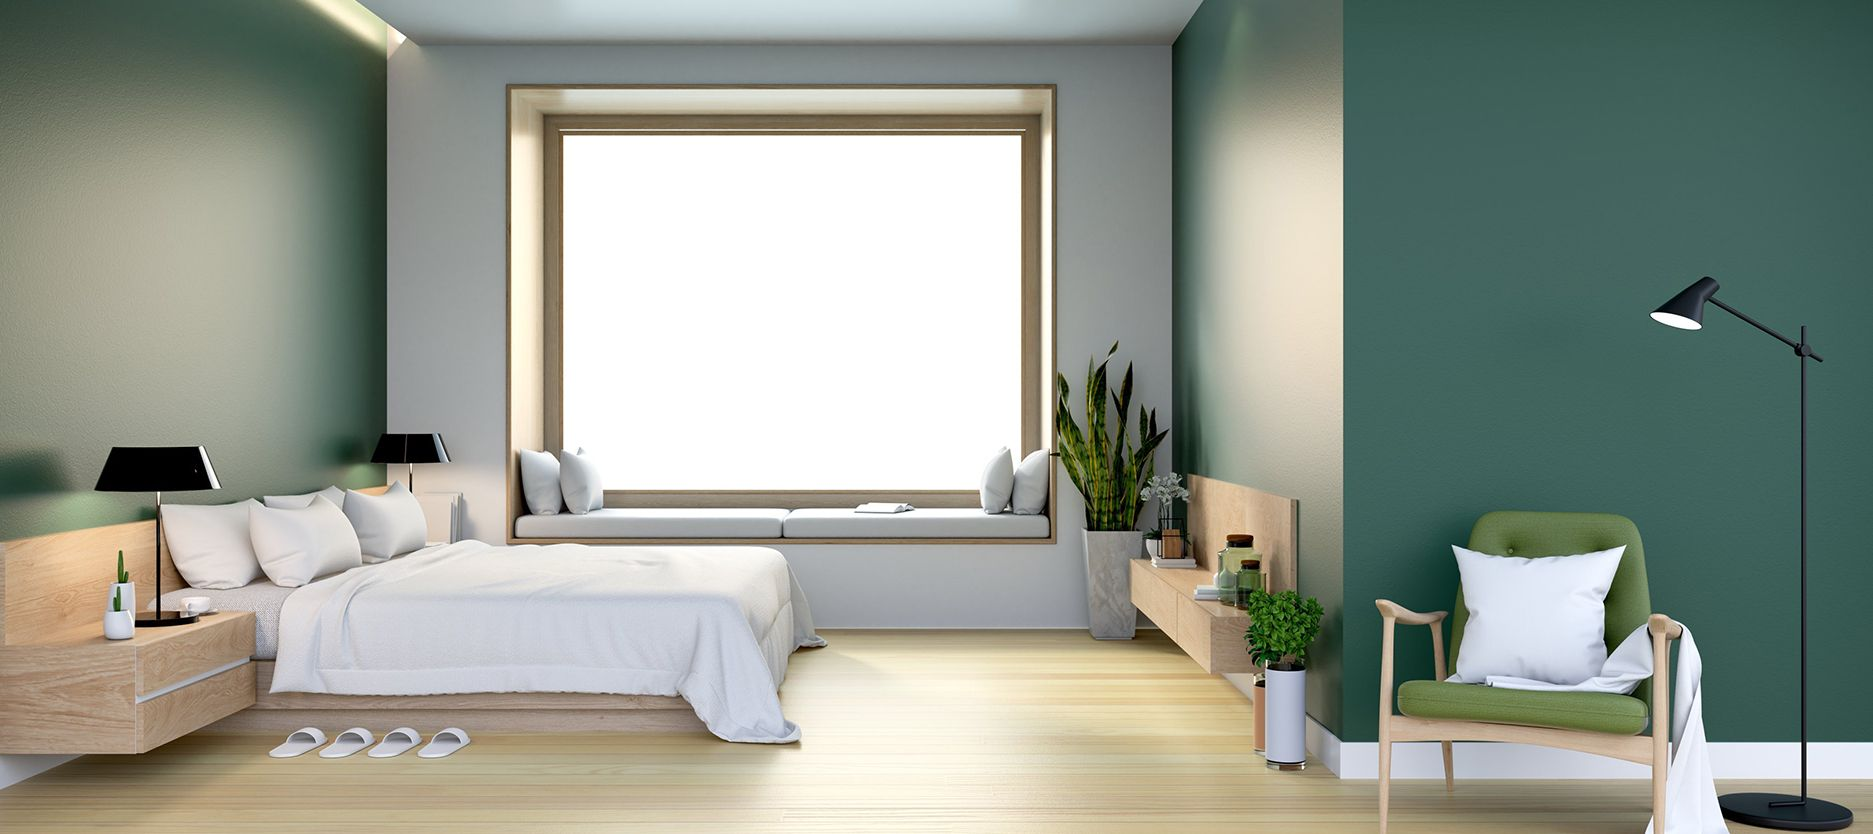 Bed room Design | Painting services